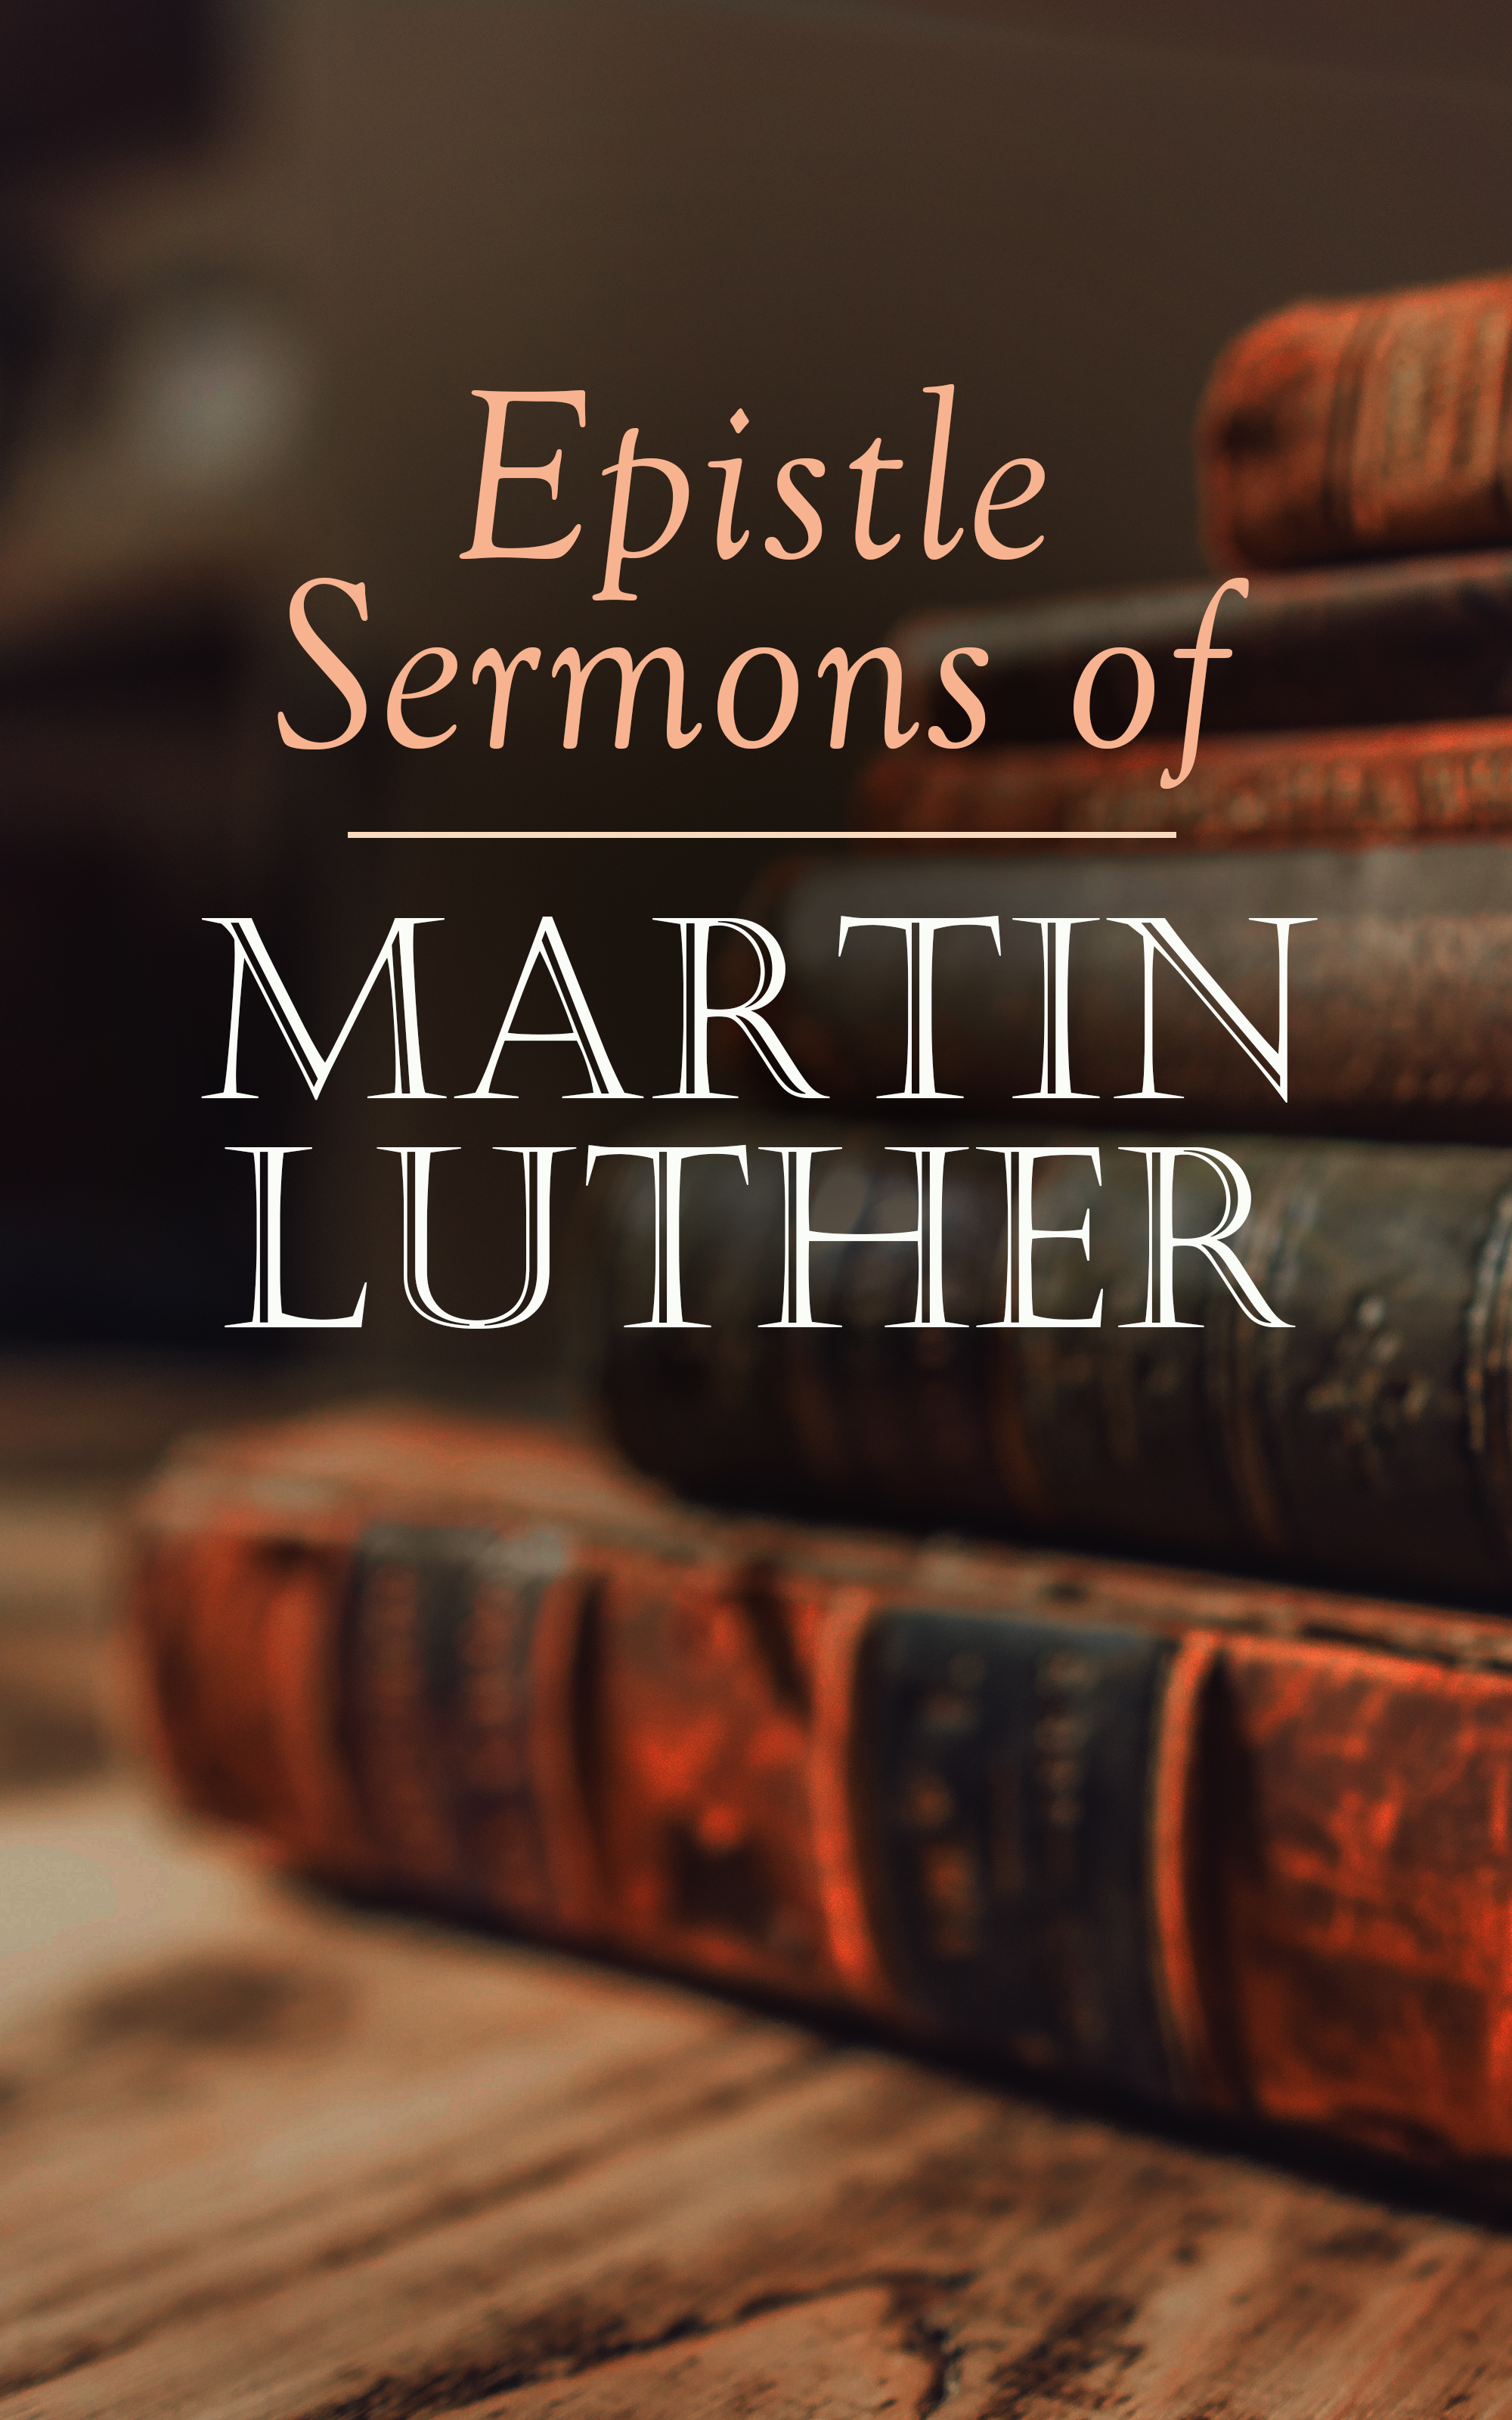 Martin Luther Epistle Sermons of Martin Luther